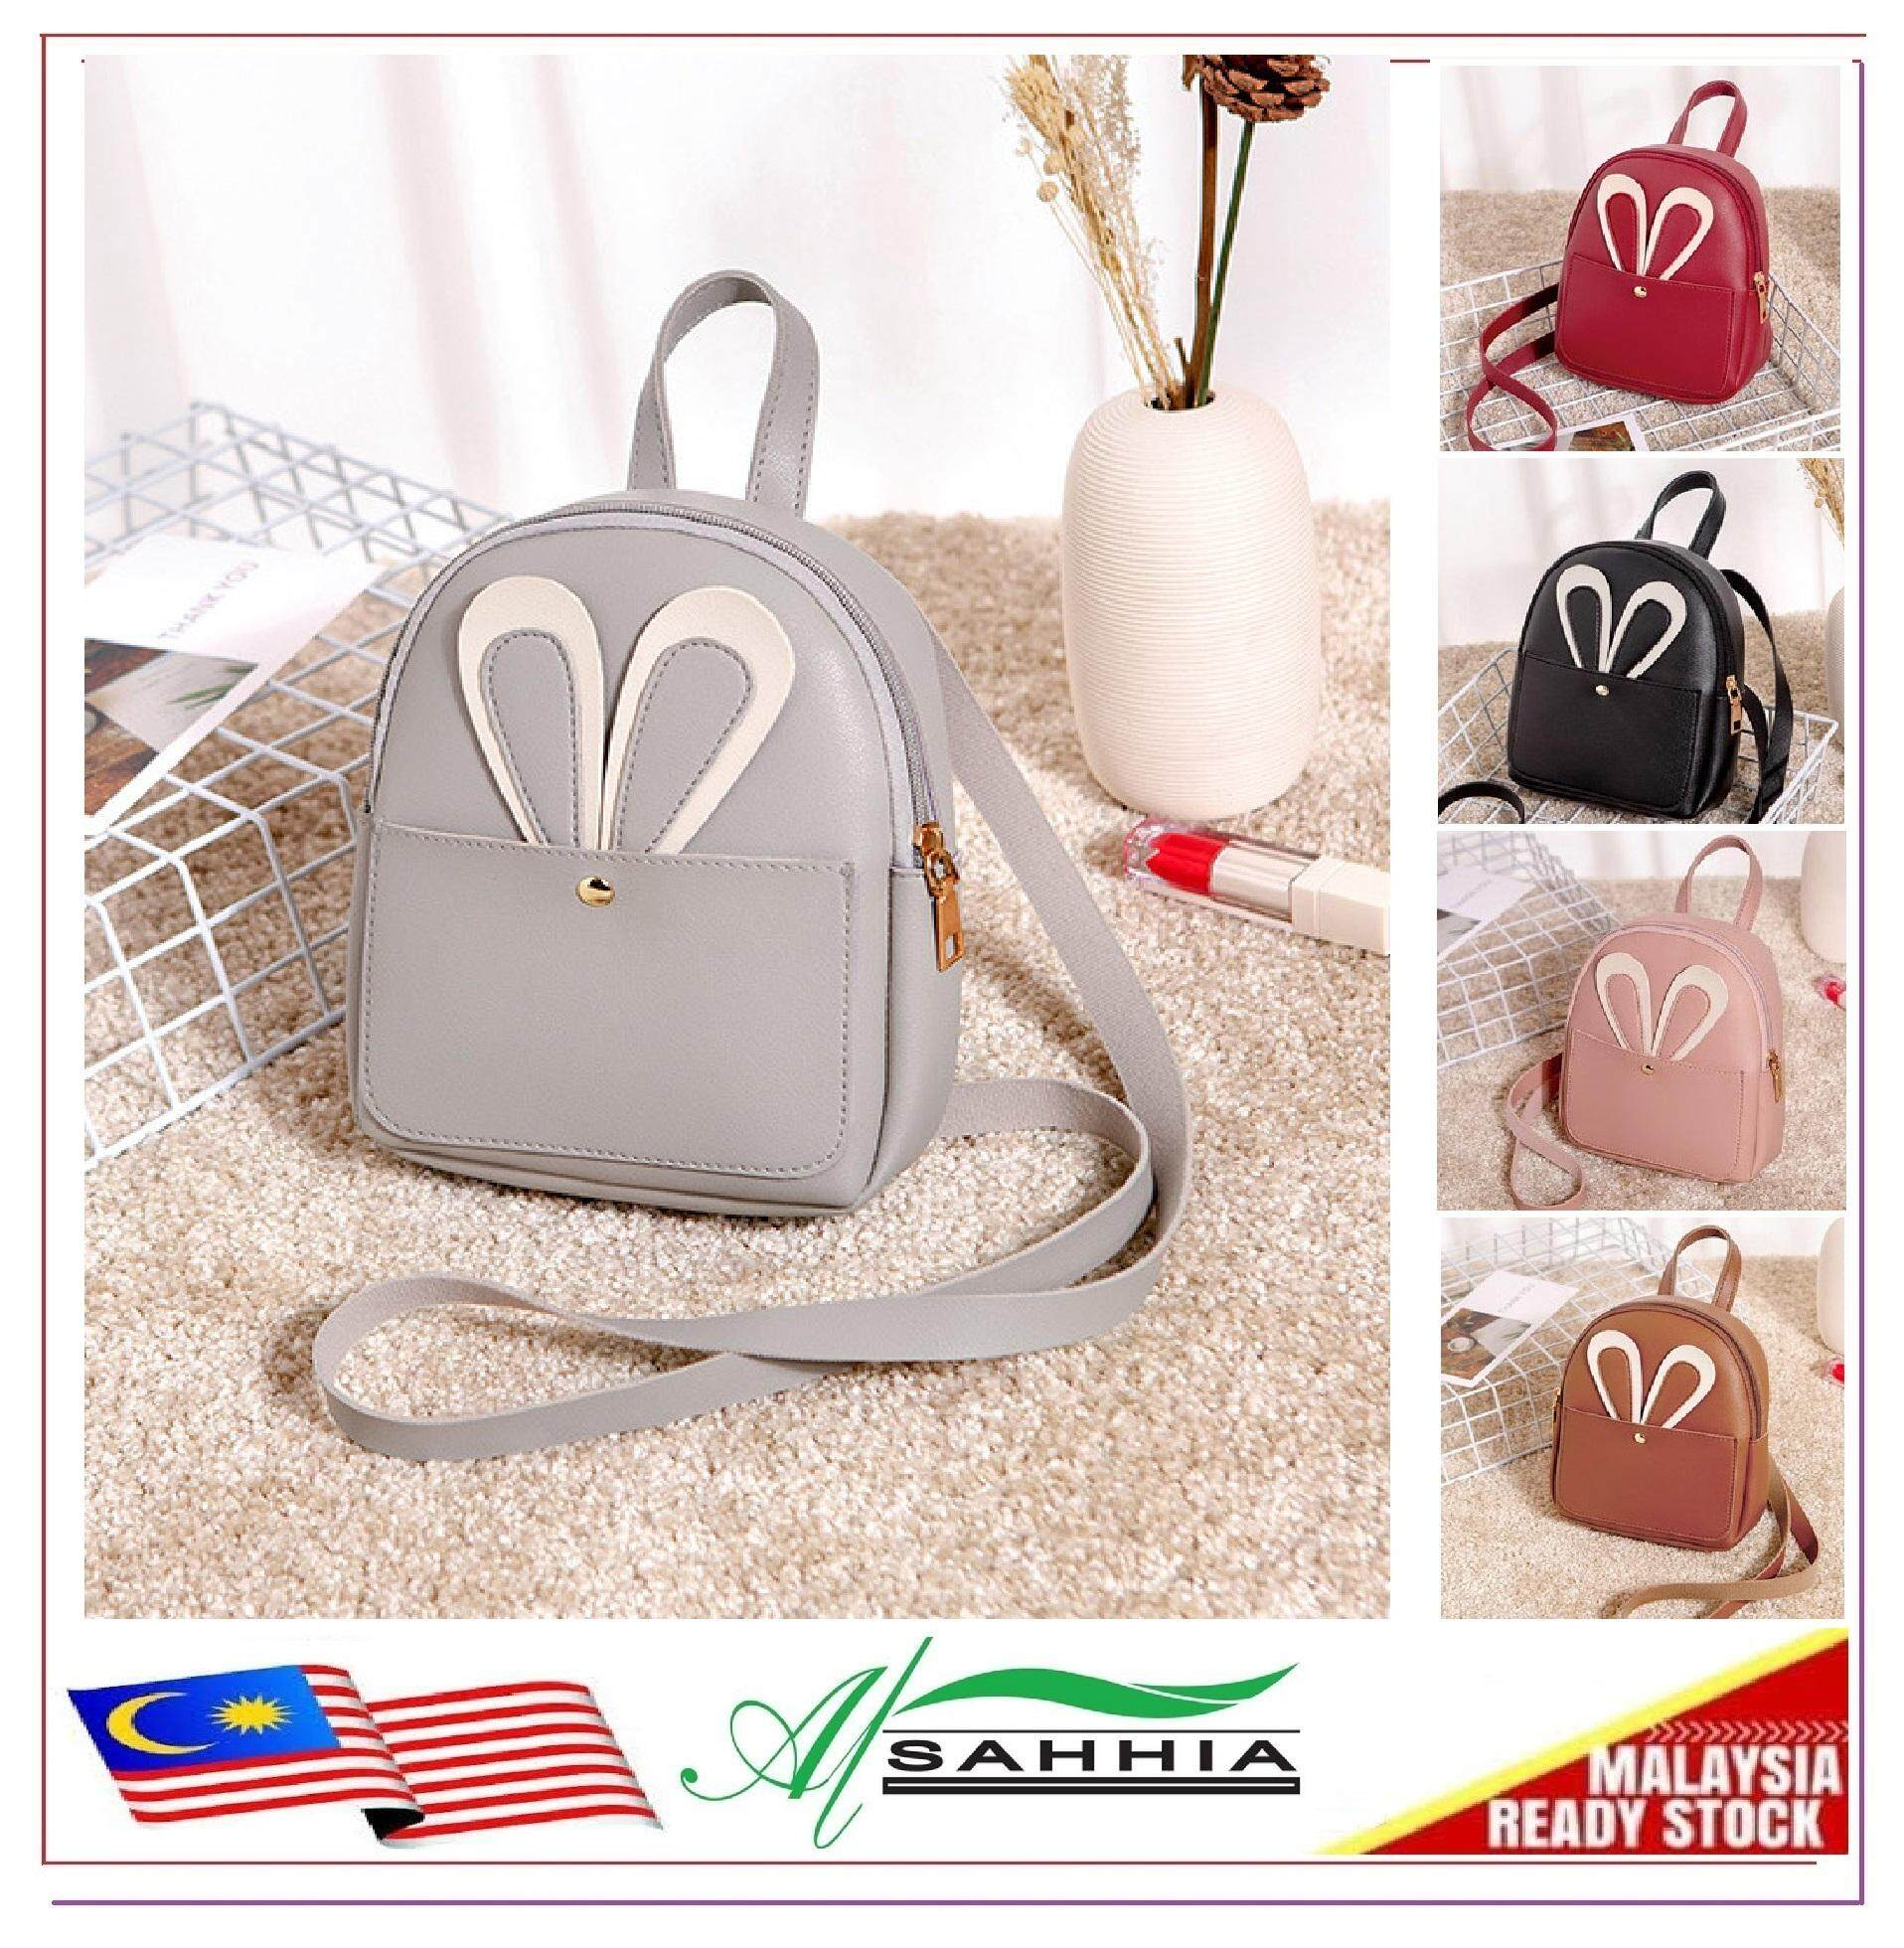 975b1d4b9ed3 Women Bags - Buy Women Bags at Best Price in Malaysia